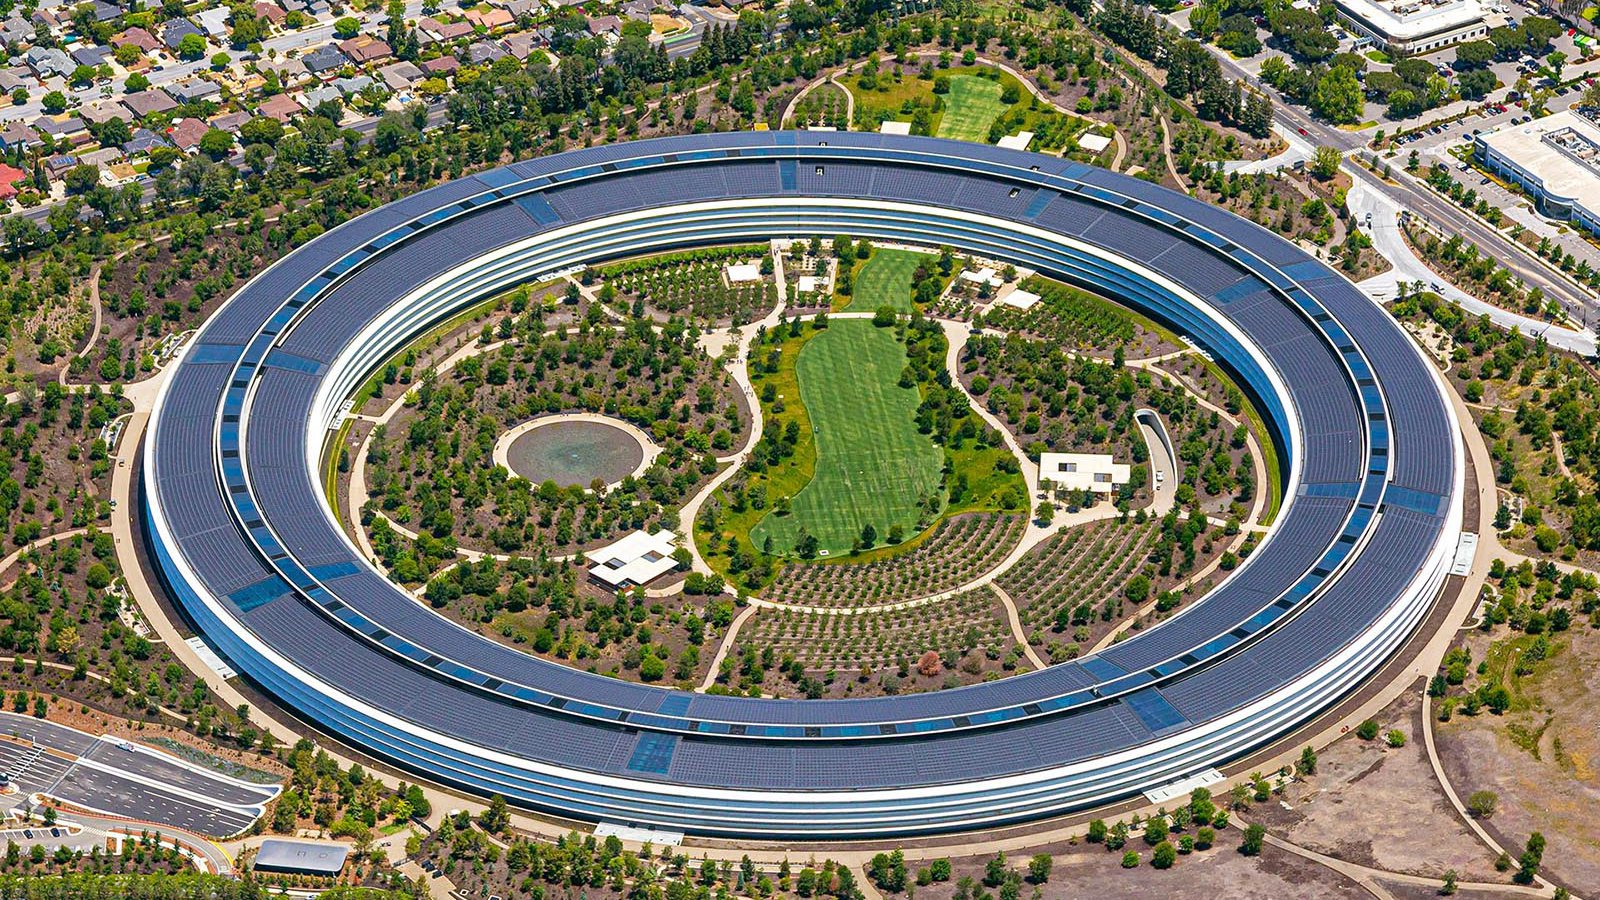 Commercial real estate photo of Apple Park (Apple Headquarters) in Cupertino, California